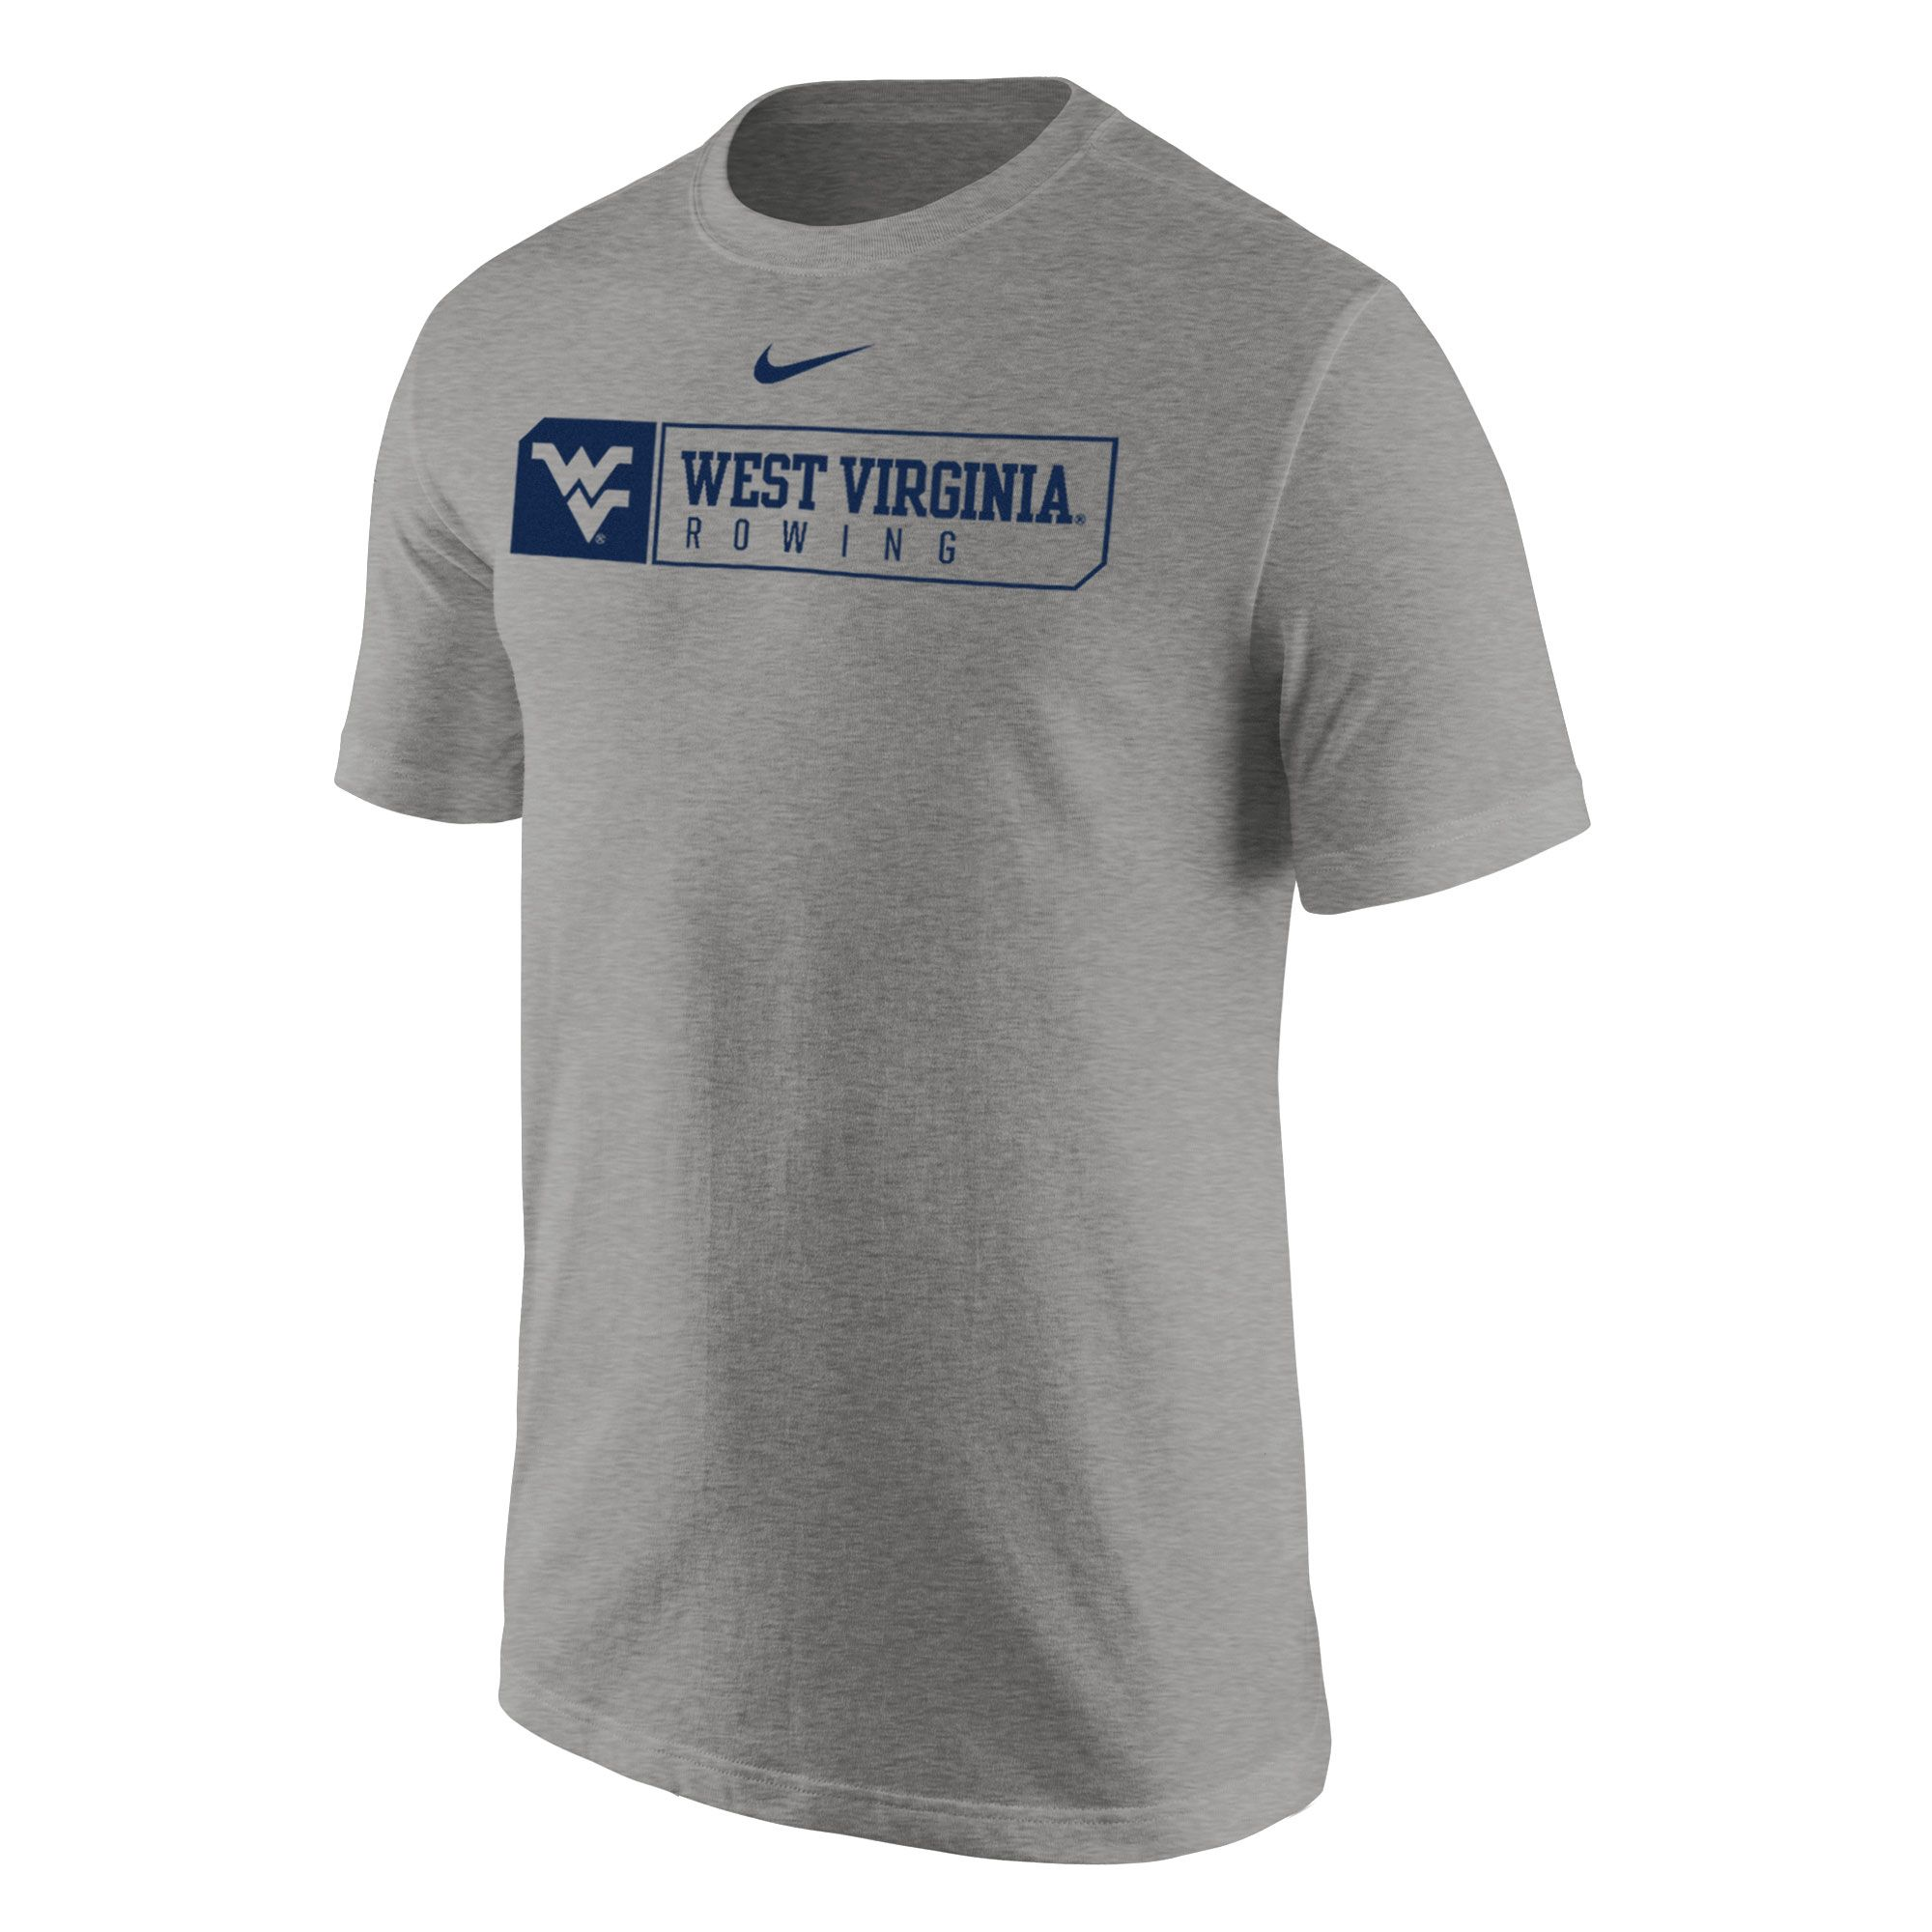 59ed1df34 Show your love for Mountaineer rowing in our Nike WVU Rowing Tee Shirt.